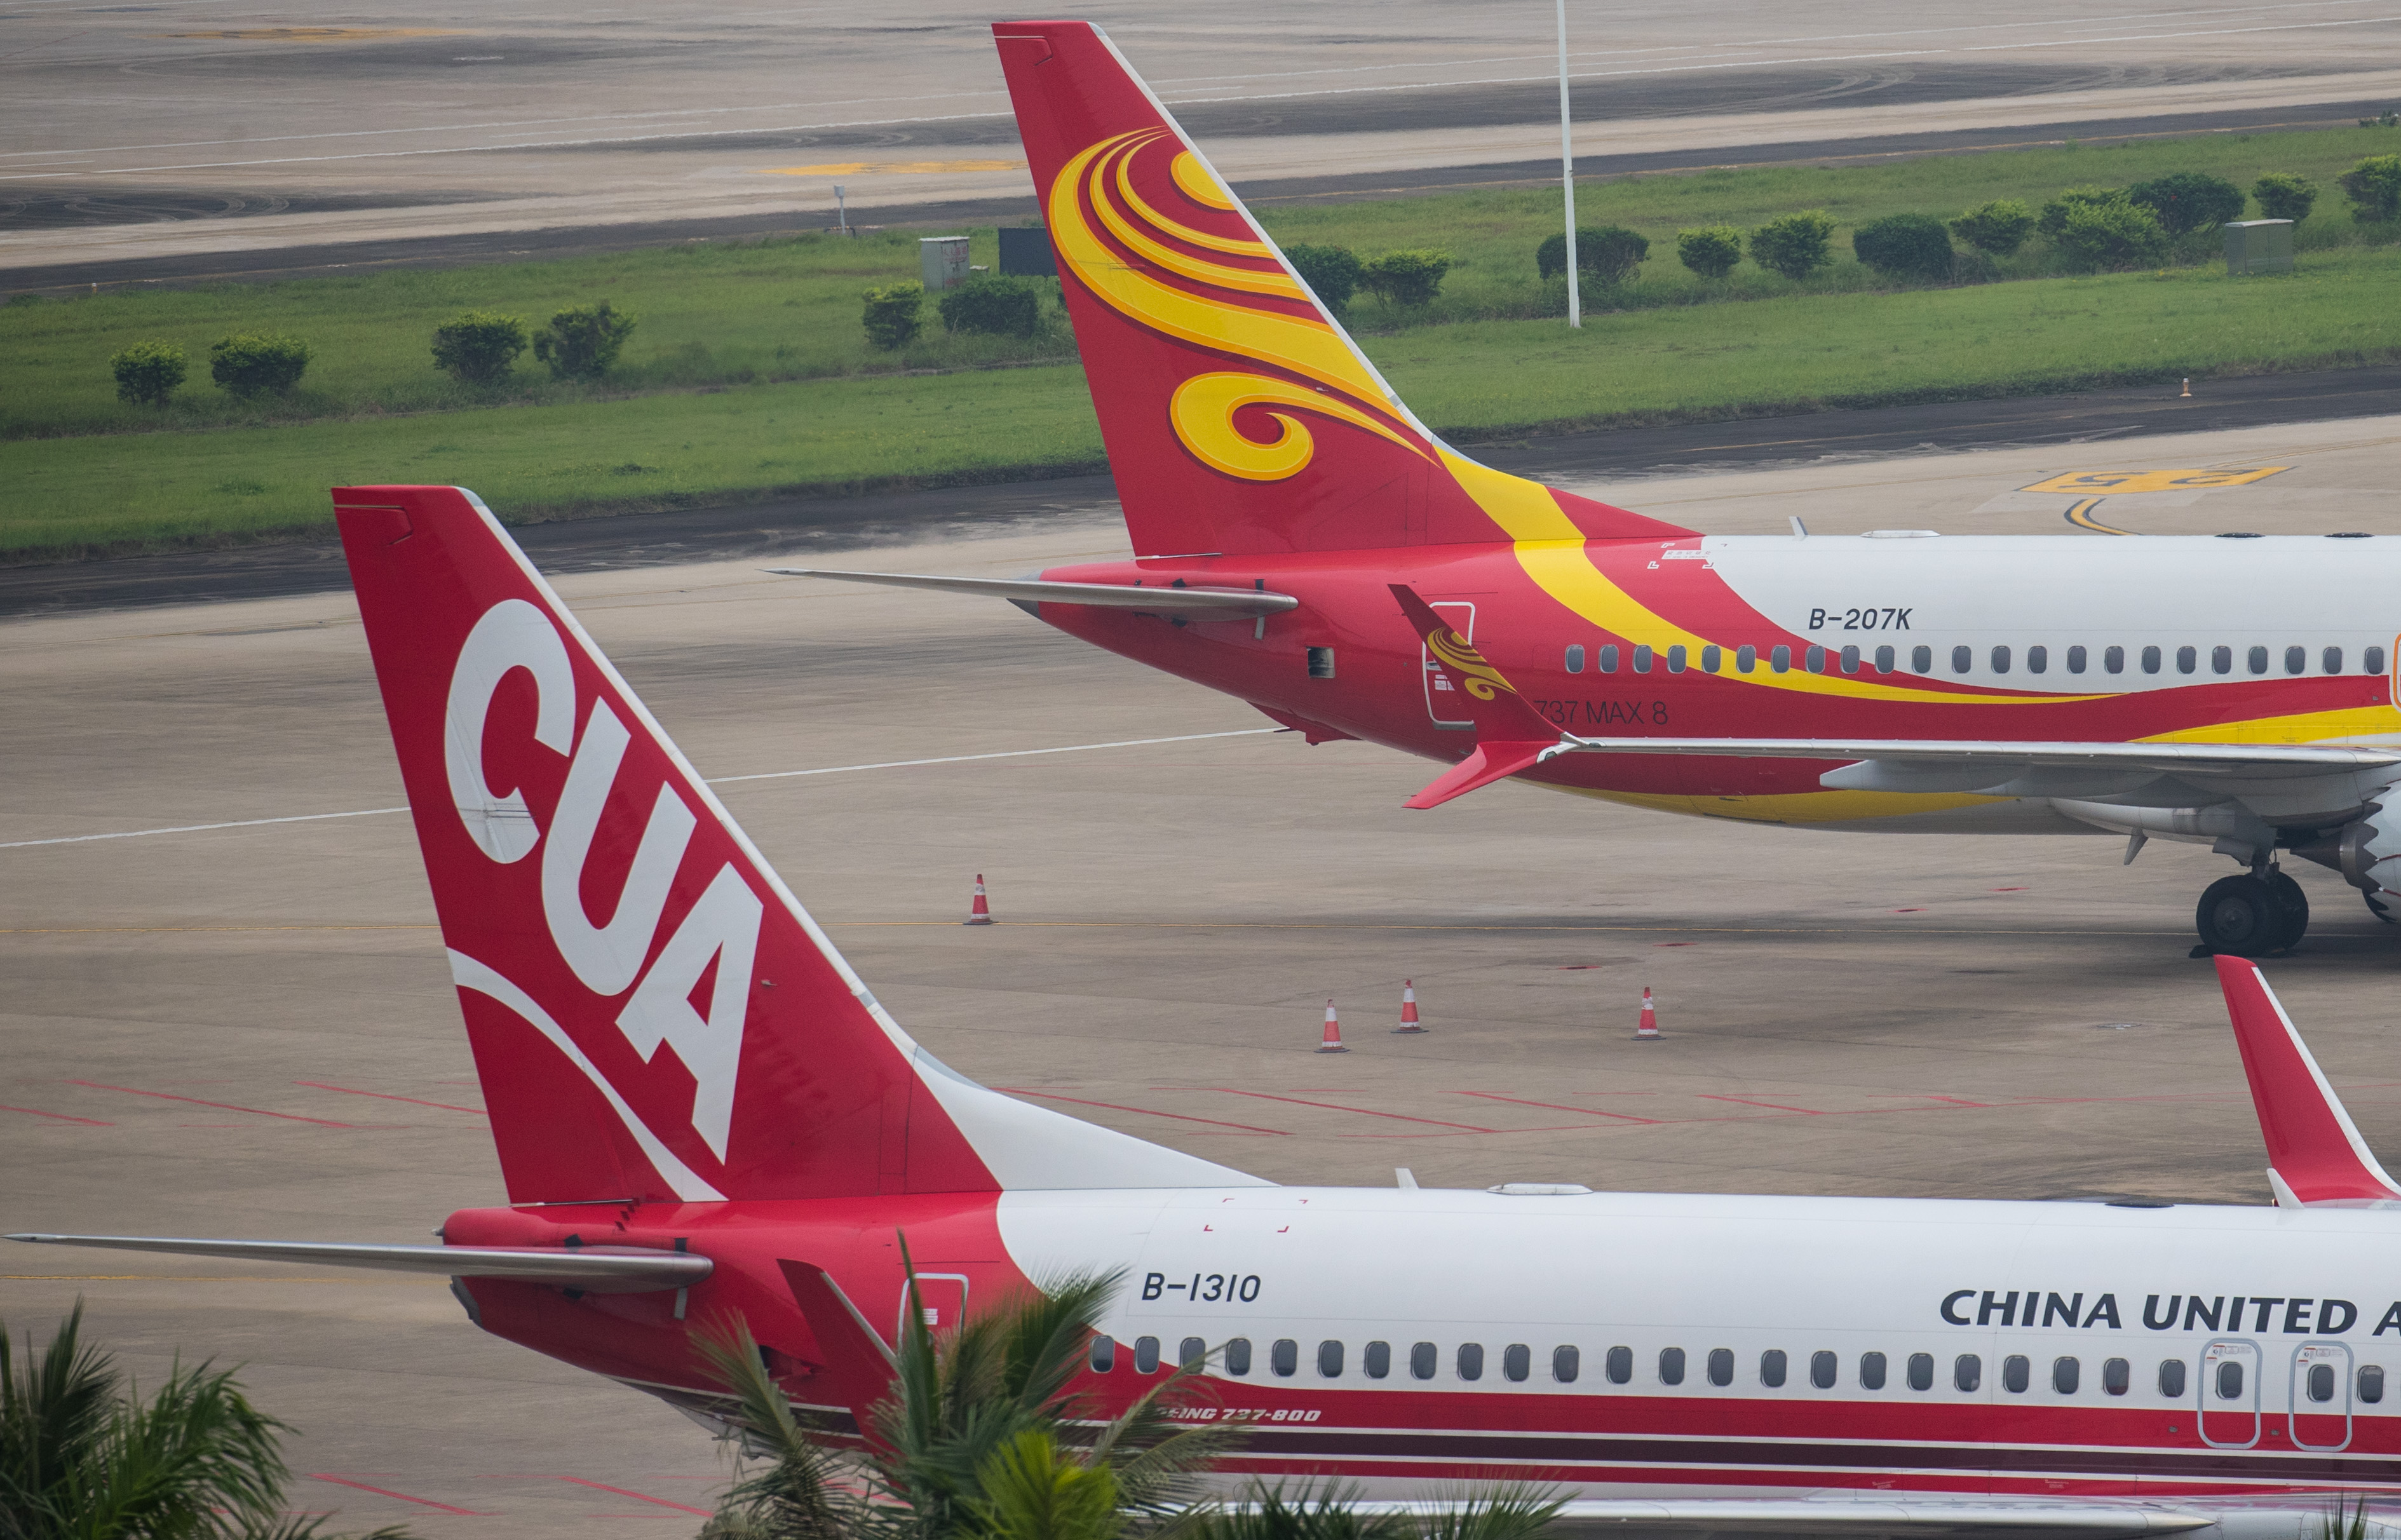 Chinese Airlines Ordered To Suspend Boeing 737 Max Airplanes